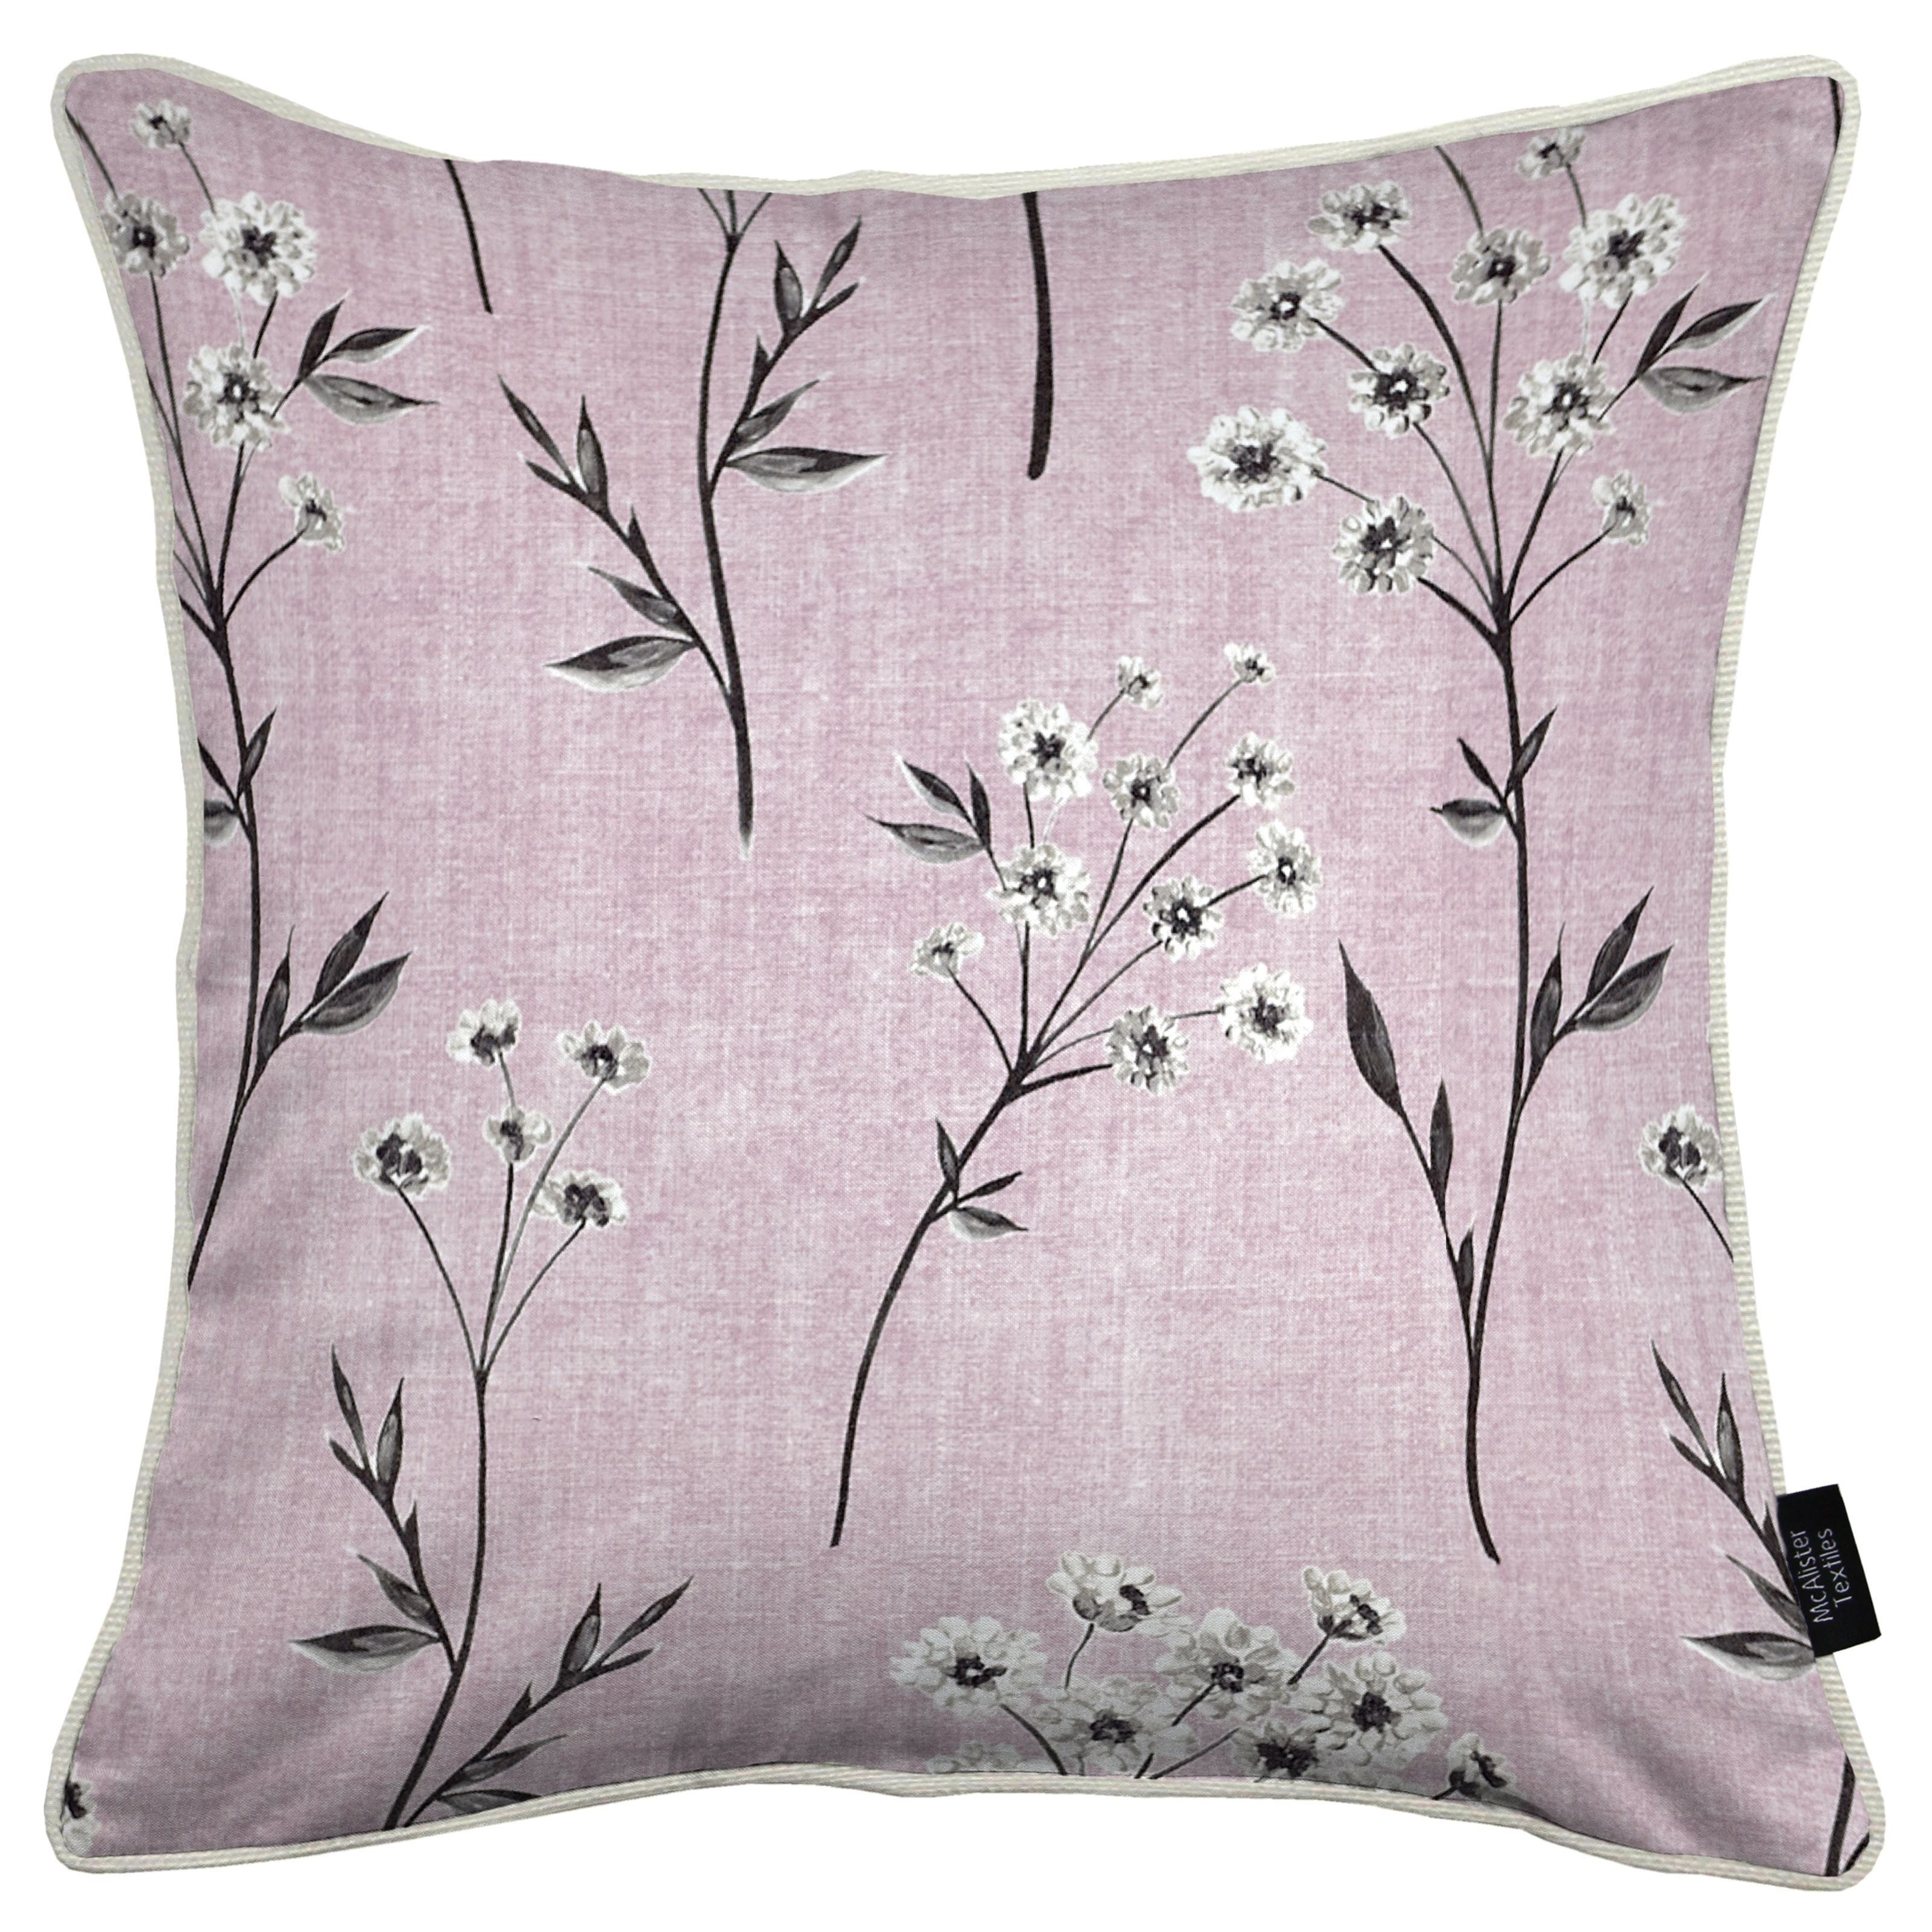 McAlister Textiles Meadow Blush Pink Floral Cotton Print Pillow Pillow Cover Only 43cm x 43cm